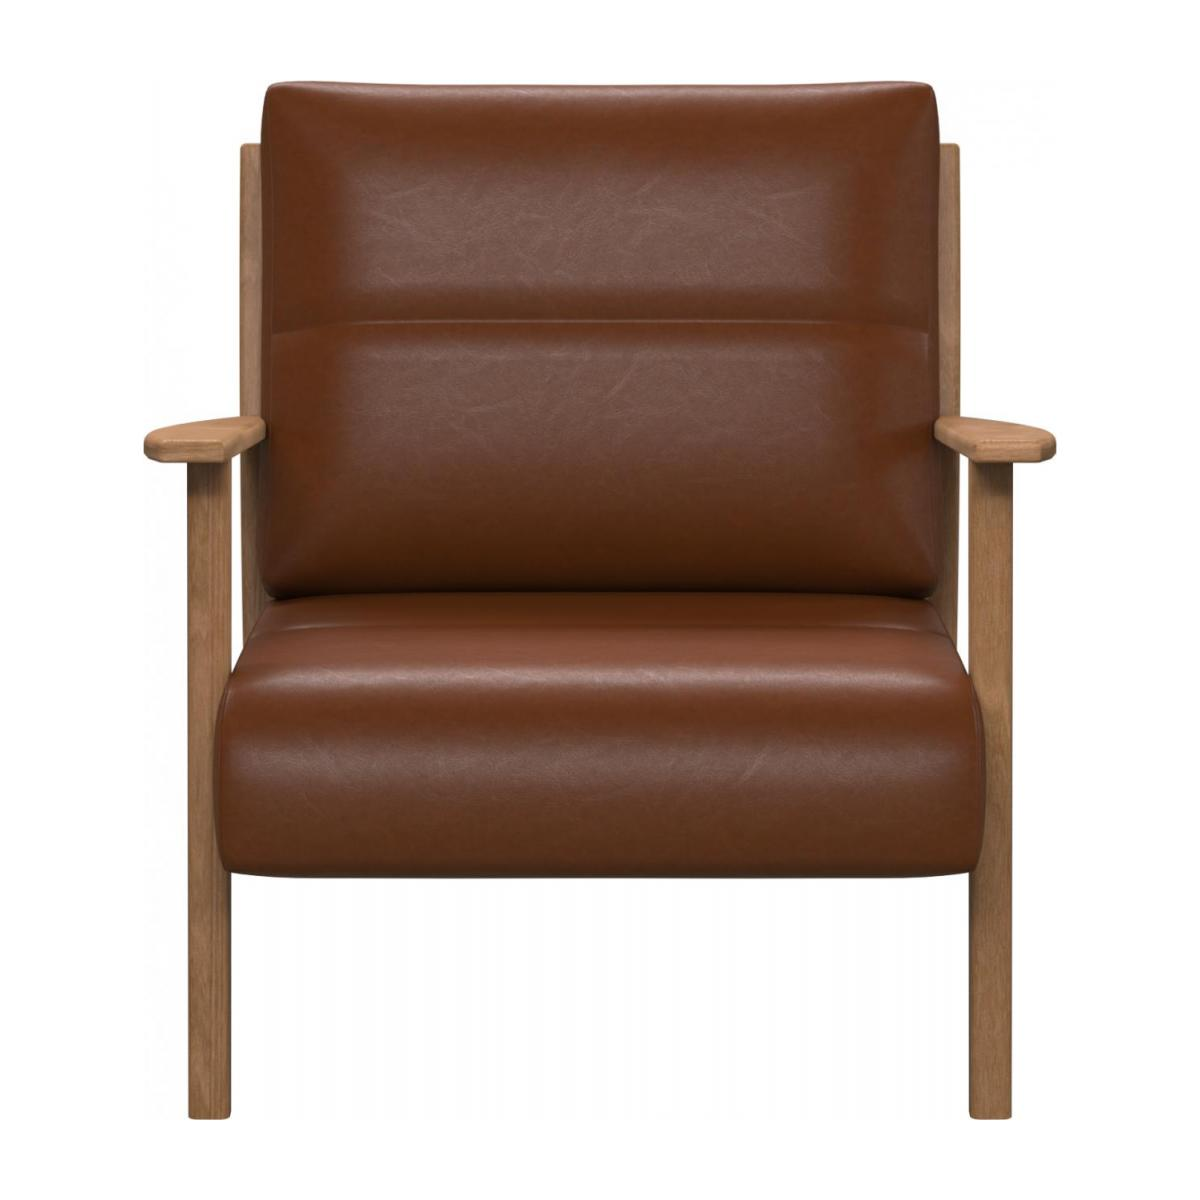 Fauteuil en cuir aniline Vintage Leather old chestnut n°2